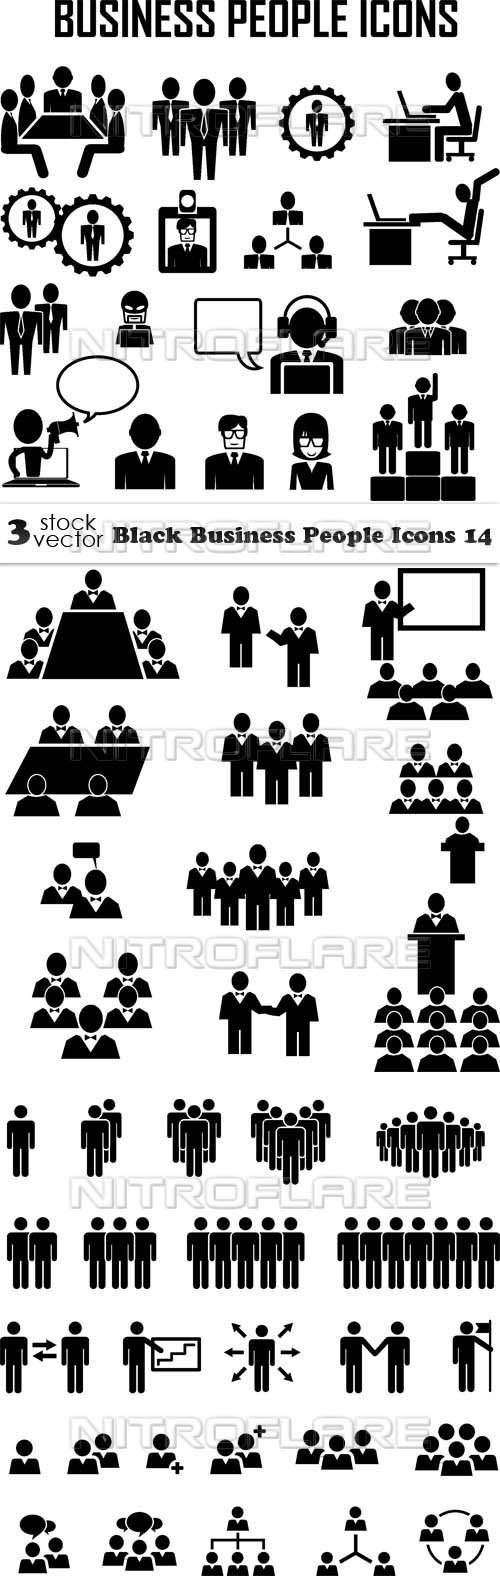 Vectors - Black Business People Icons 14